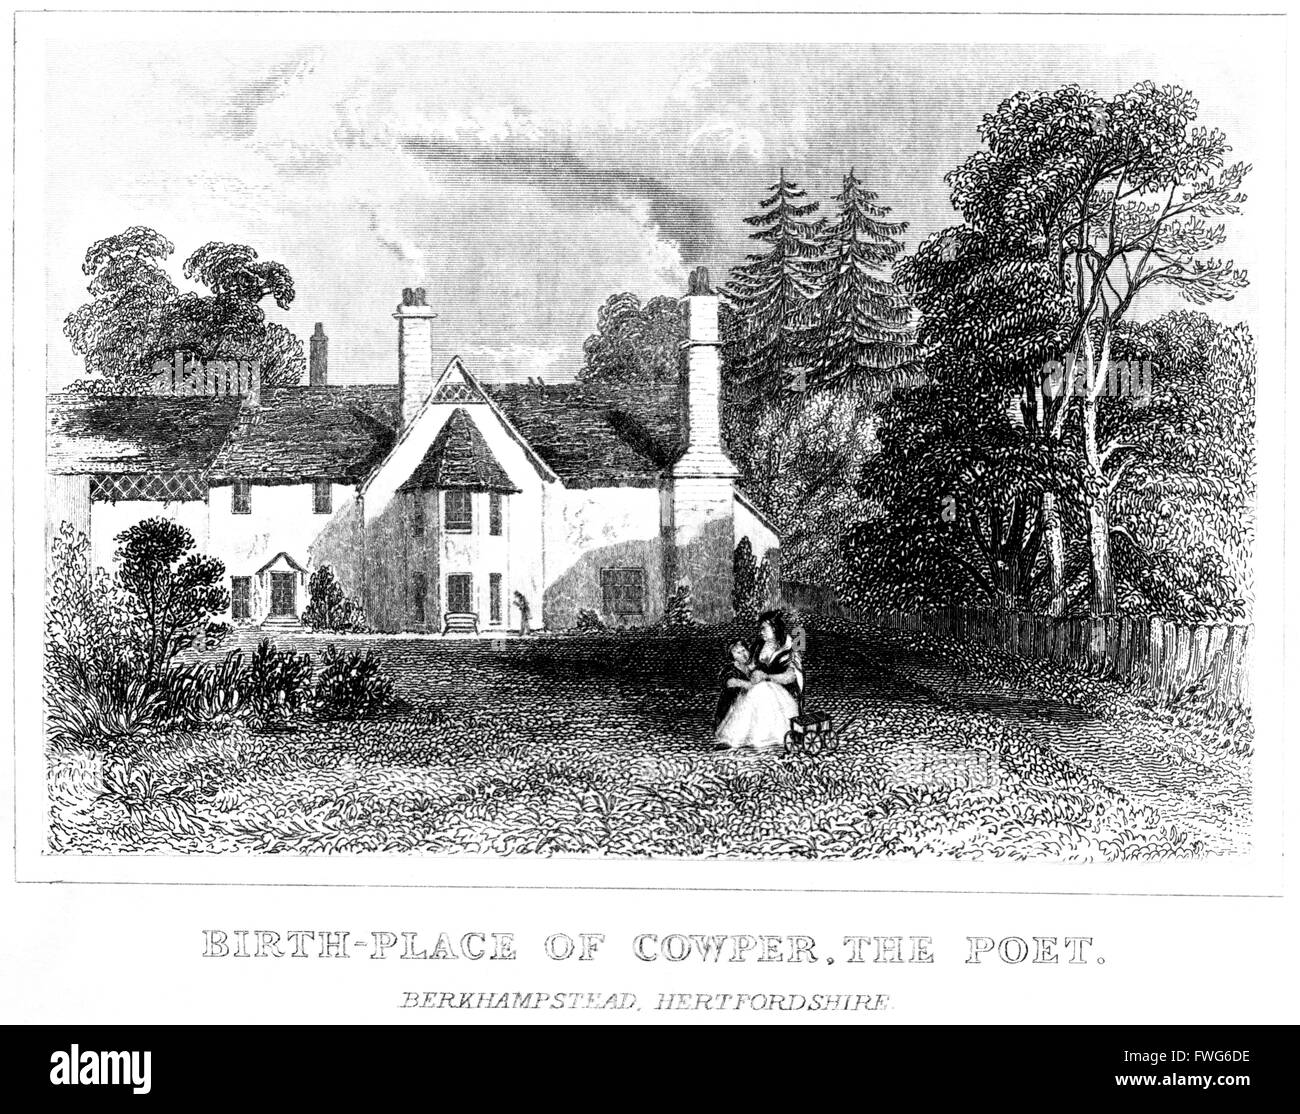 Engraving of the Birthplace of Cowper, The Poet. Berkhamstead, Hertfordshire scanned at high res from a book printed - Stock Image